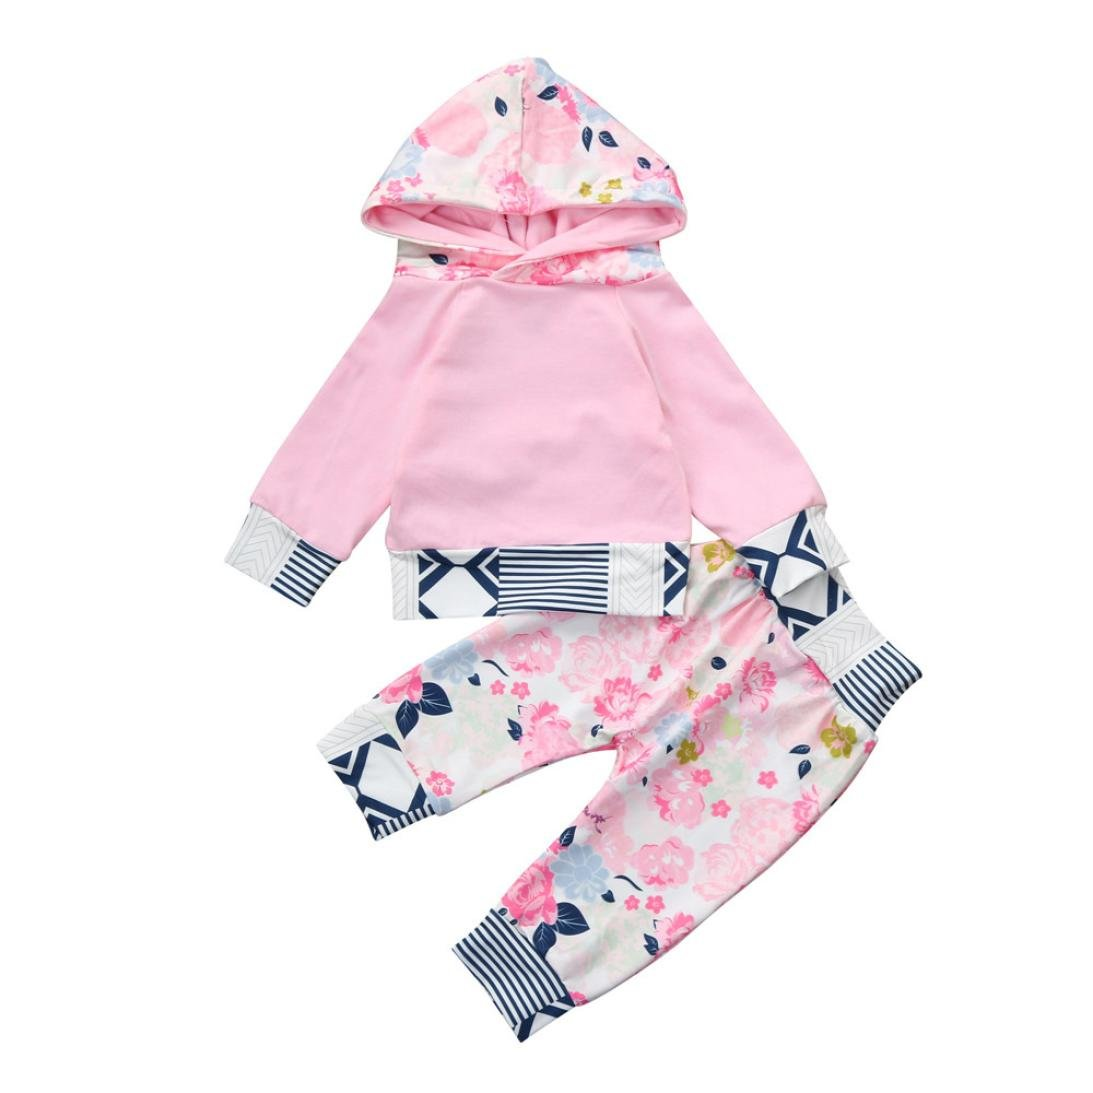 Lavany 2Pcs Infant Baby Girls Outfits Flower Print Hoodie Tops+Pants Clothes Set